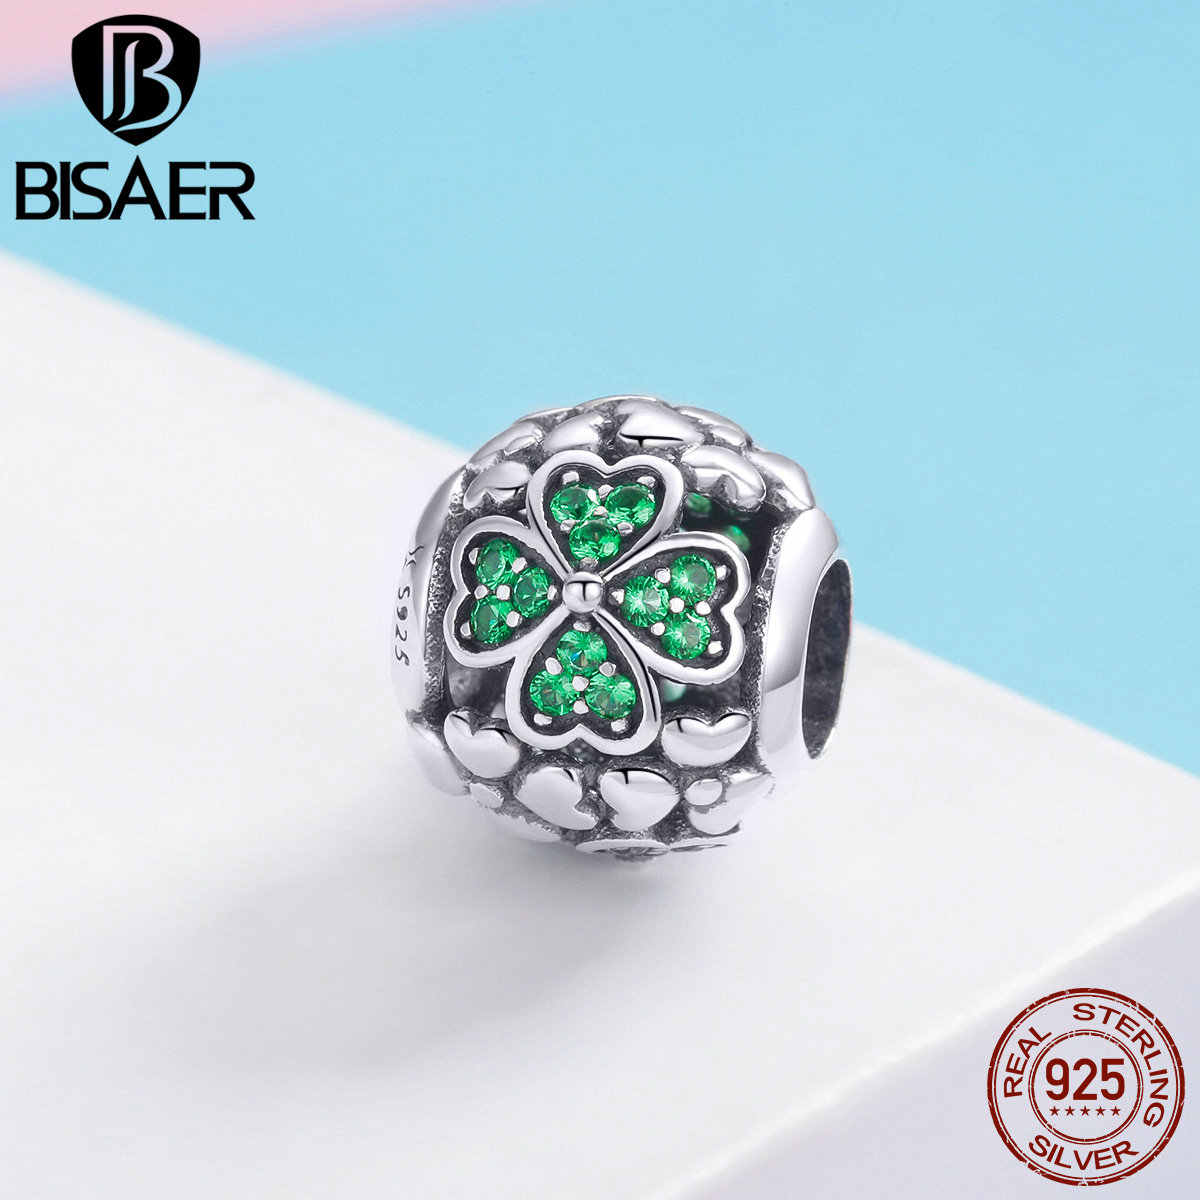 BISAER 925 Sterling Silver Green Hope Leaves Shamrock Clover Charm Beads fit Beads DIY Sterling Silver 925 Jewelry Making ECC964